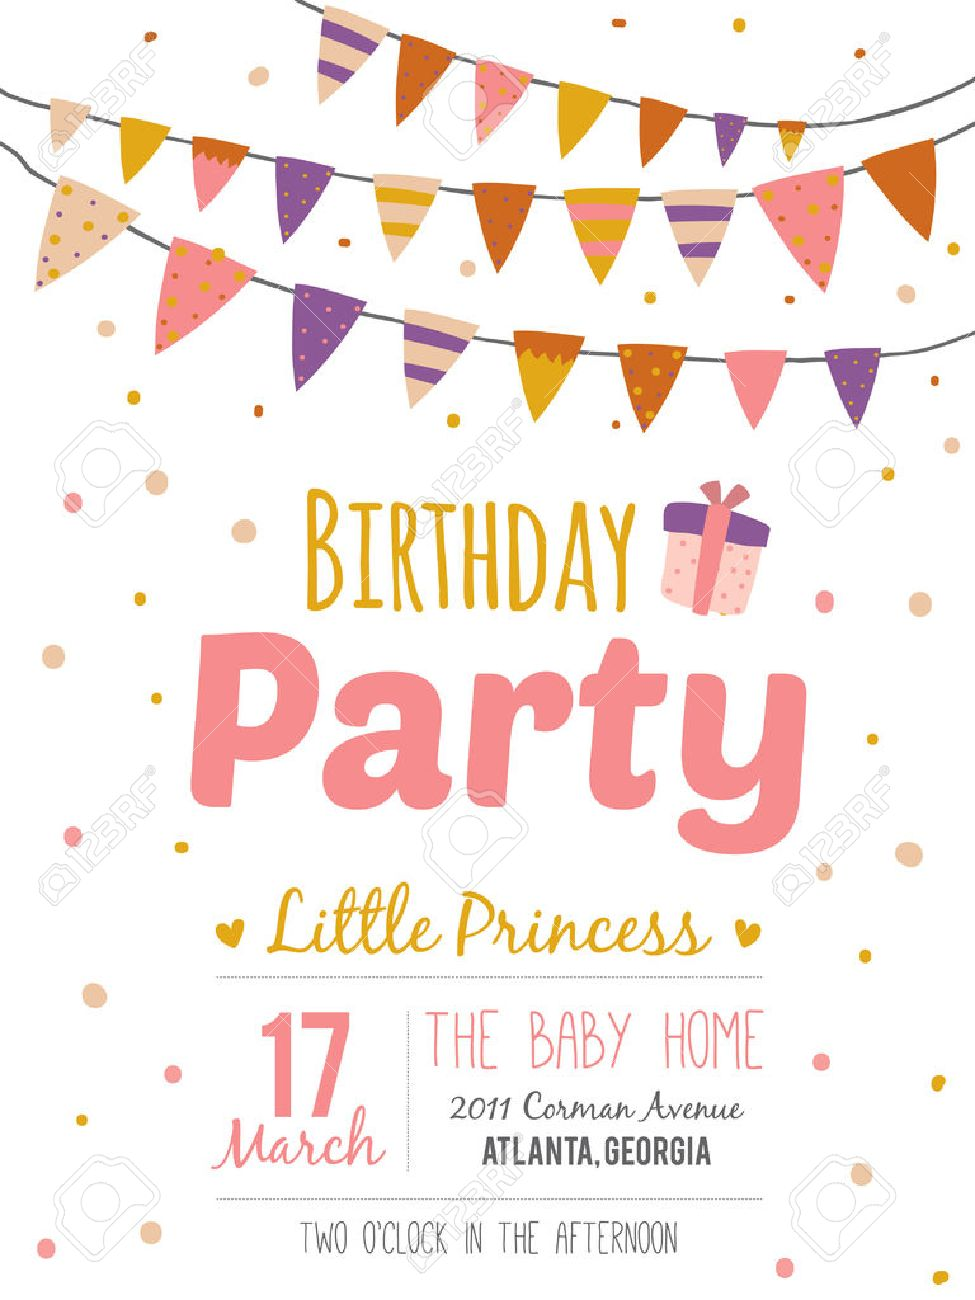 birthday poster images ; 40500387-unusual-inspirational-romantic-and-motivational-quotes-invitation-card-stylish-happy-birthday-poster